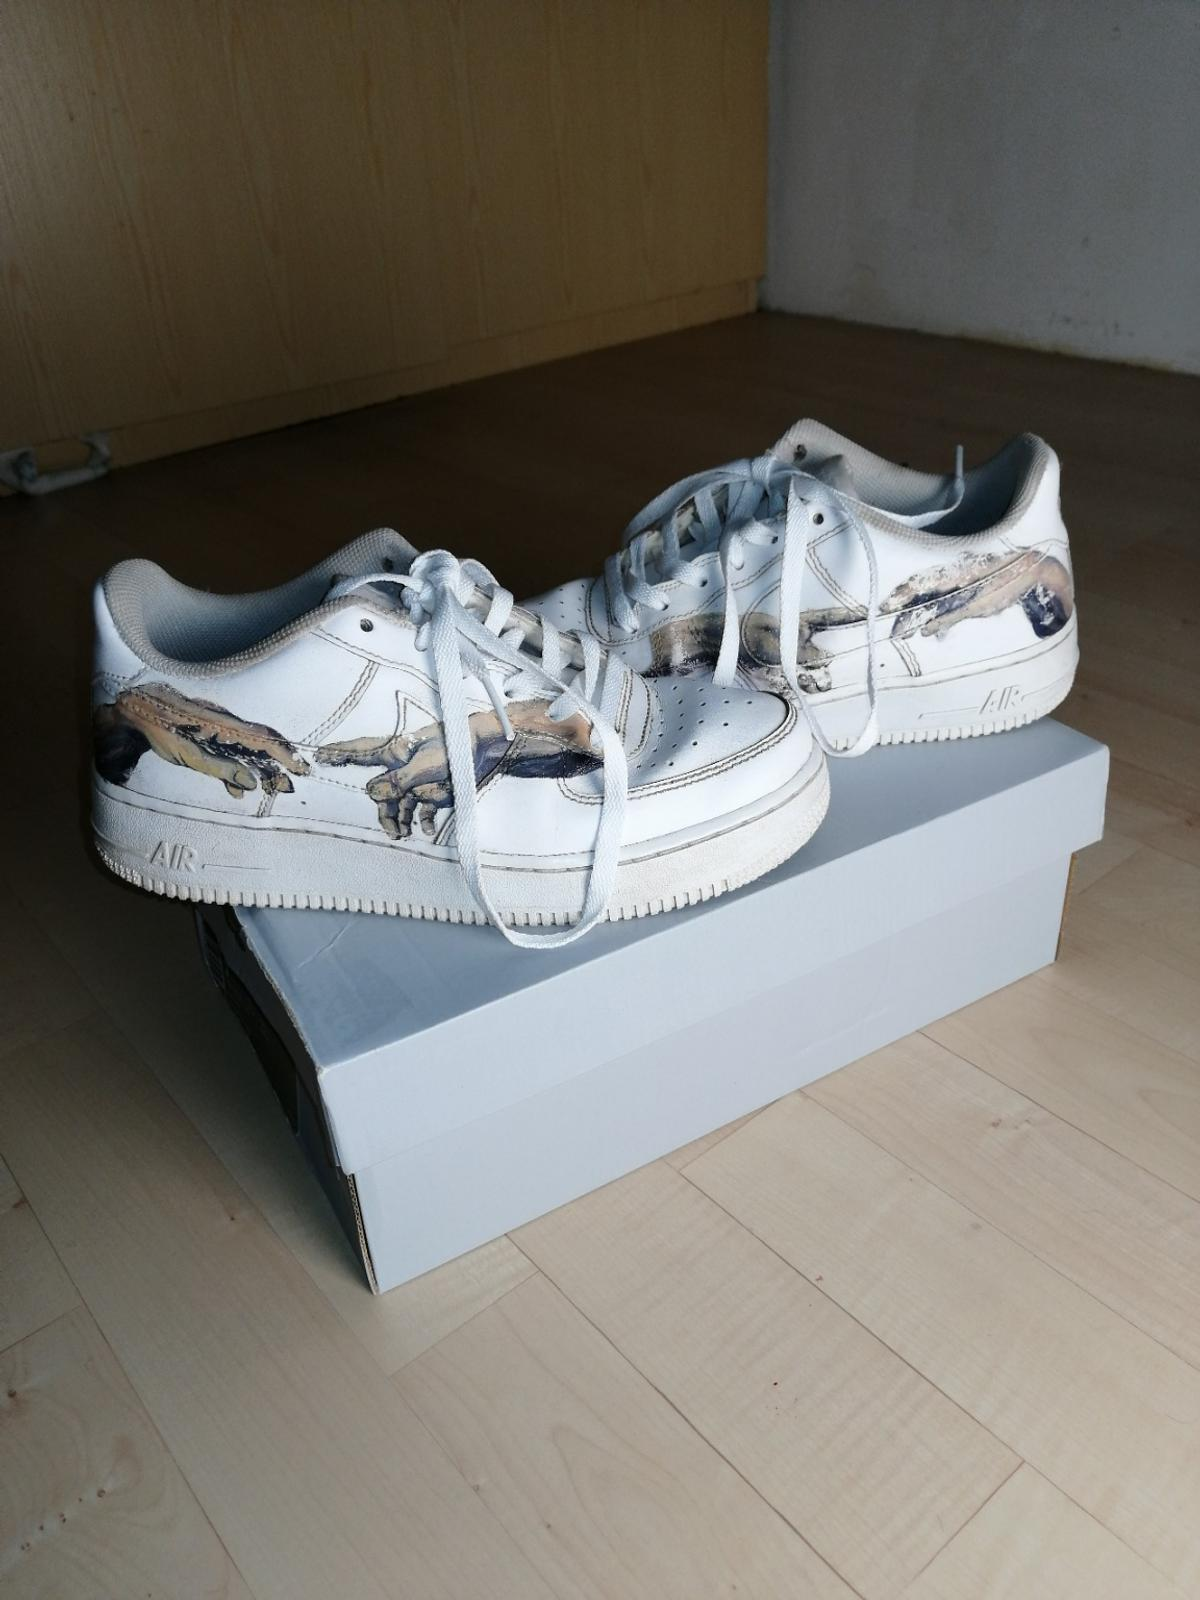 Nike Air force 1 customized Gr. 39 in 1120 KG Altmannsdorf